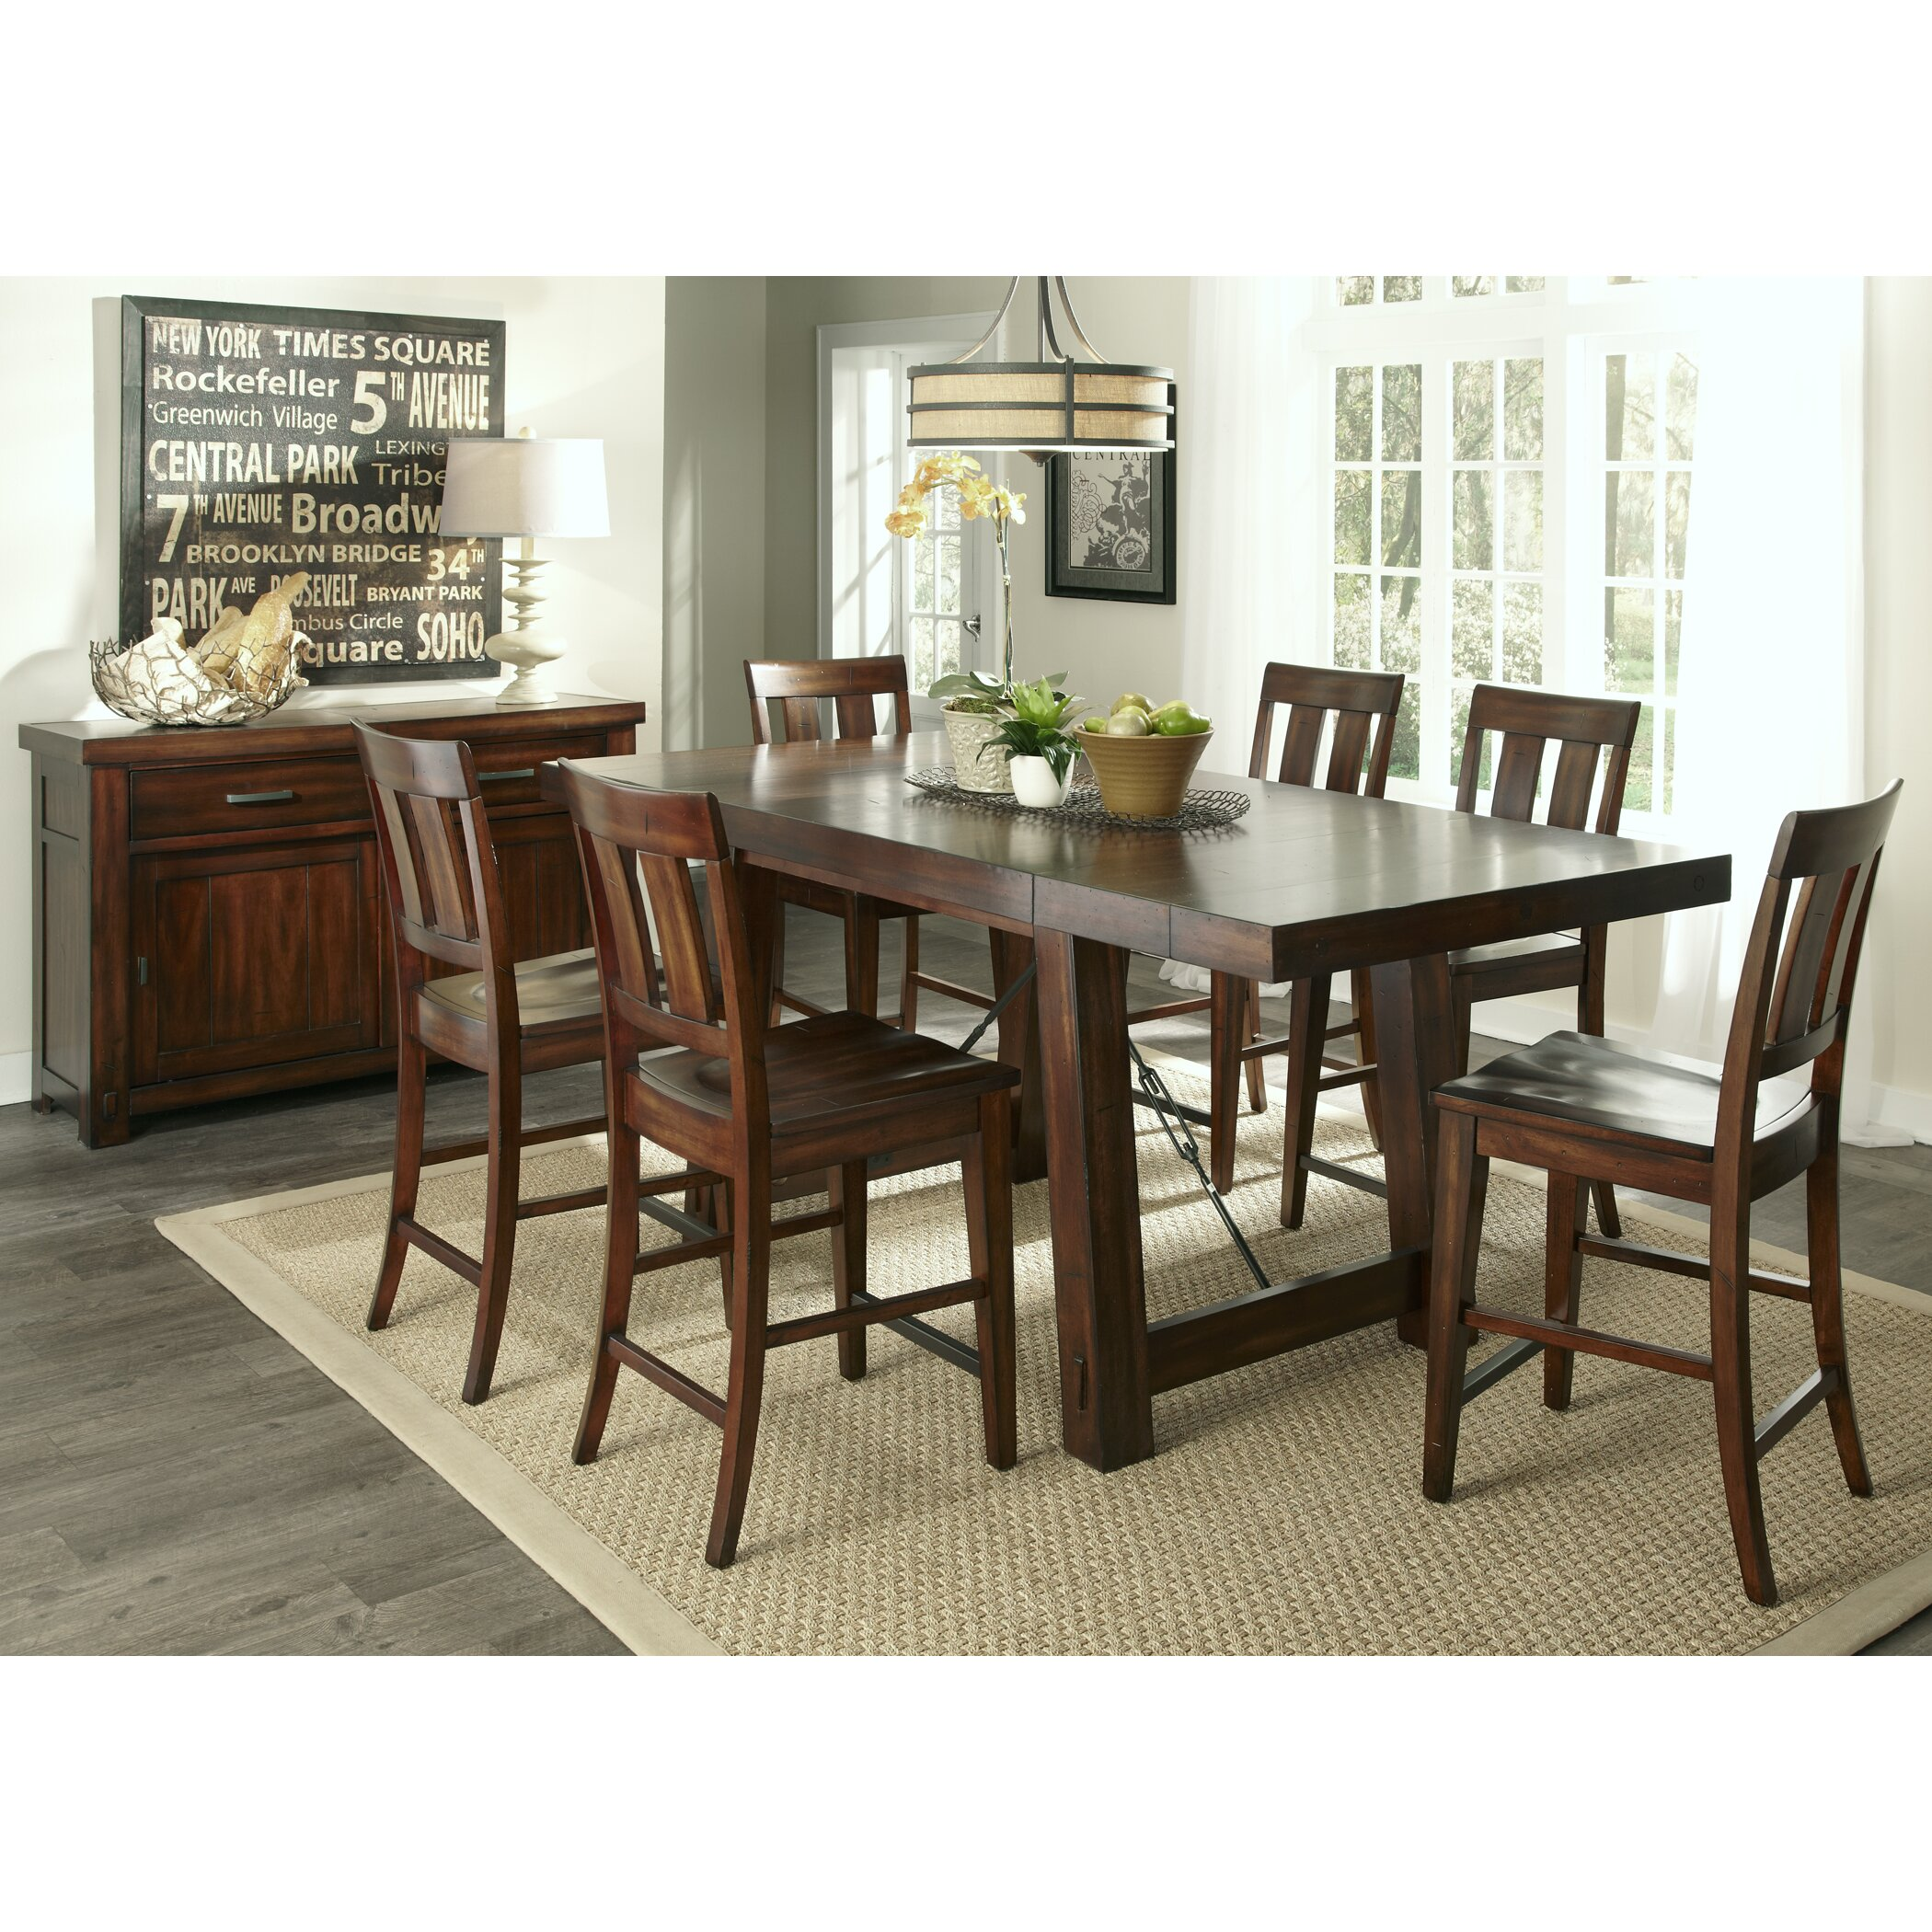 Loon Peak Haloke Counter Height Extendable Dining Table  : Loon Peak Haloke Counter Height Extendable Dining Table LOON4648 from www.wayfair.com size 2100 x 2100 jpeg 985kB